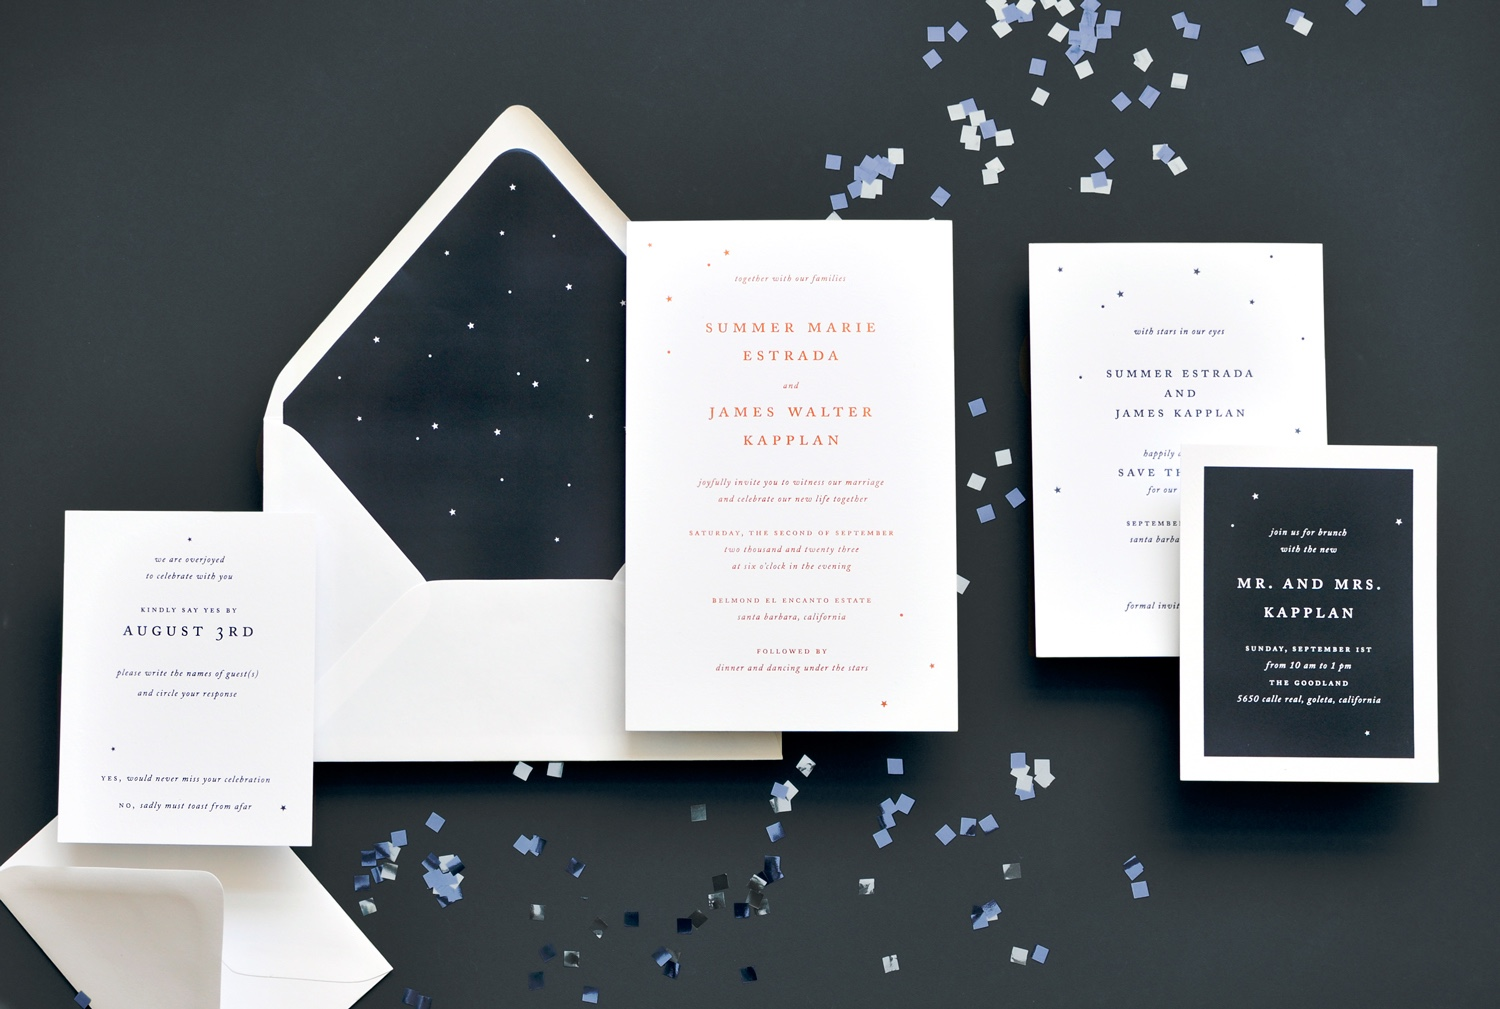 Summer foil stamped wedding invitation from Staccato available to engaged customers in DC, MD, and VA